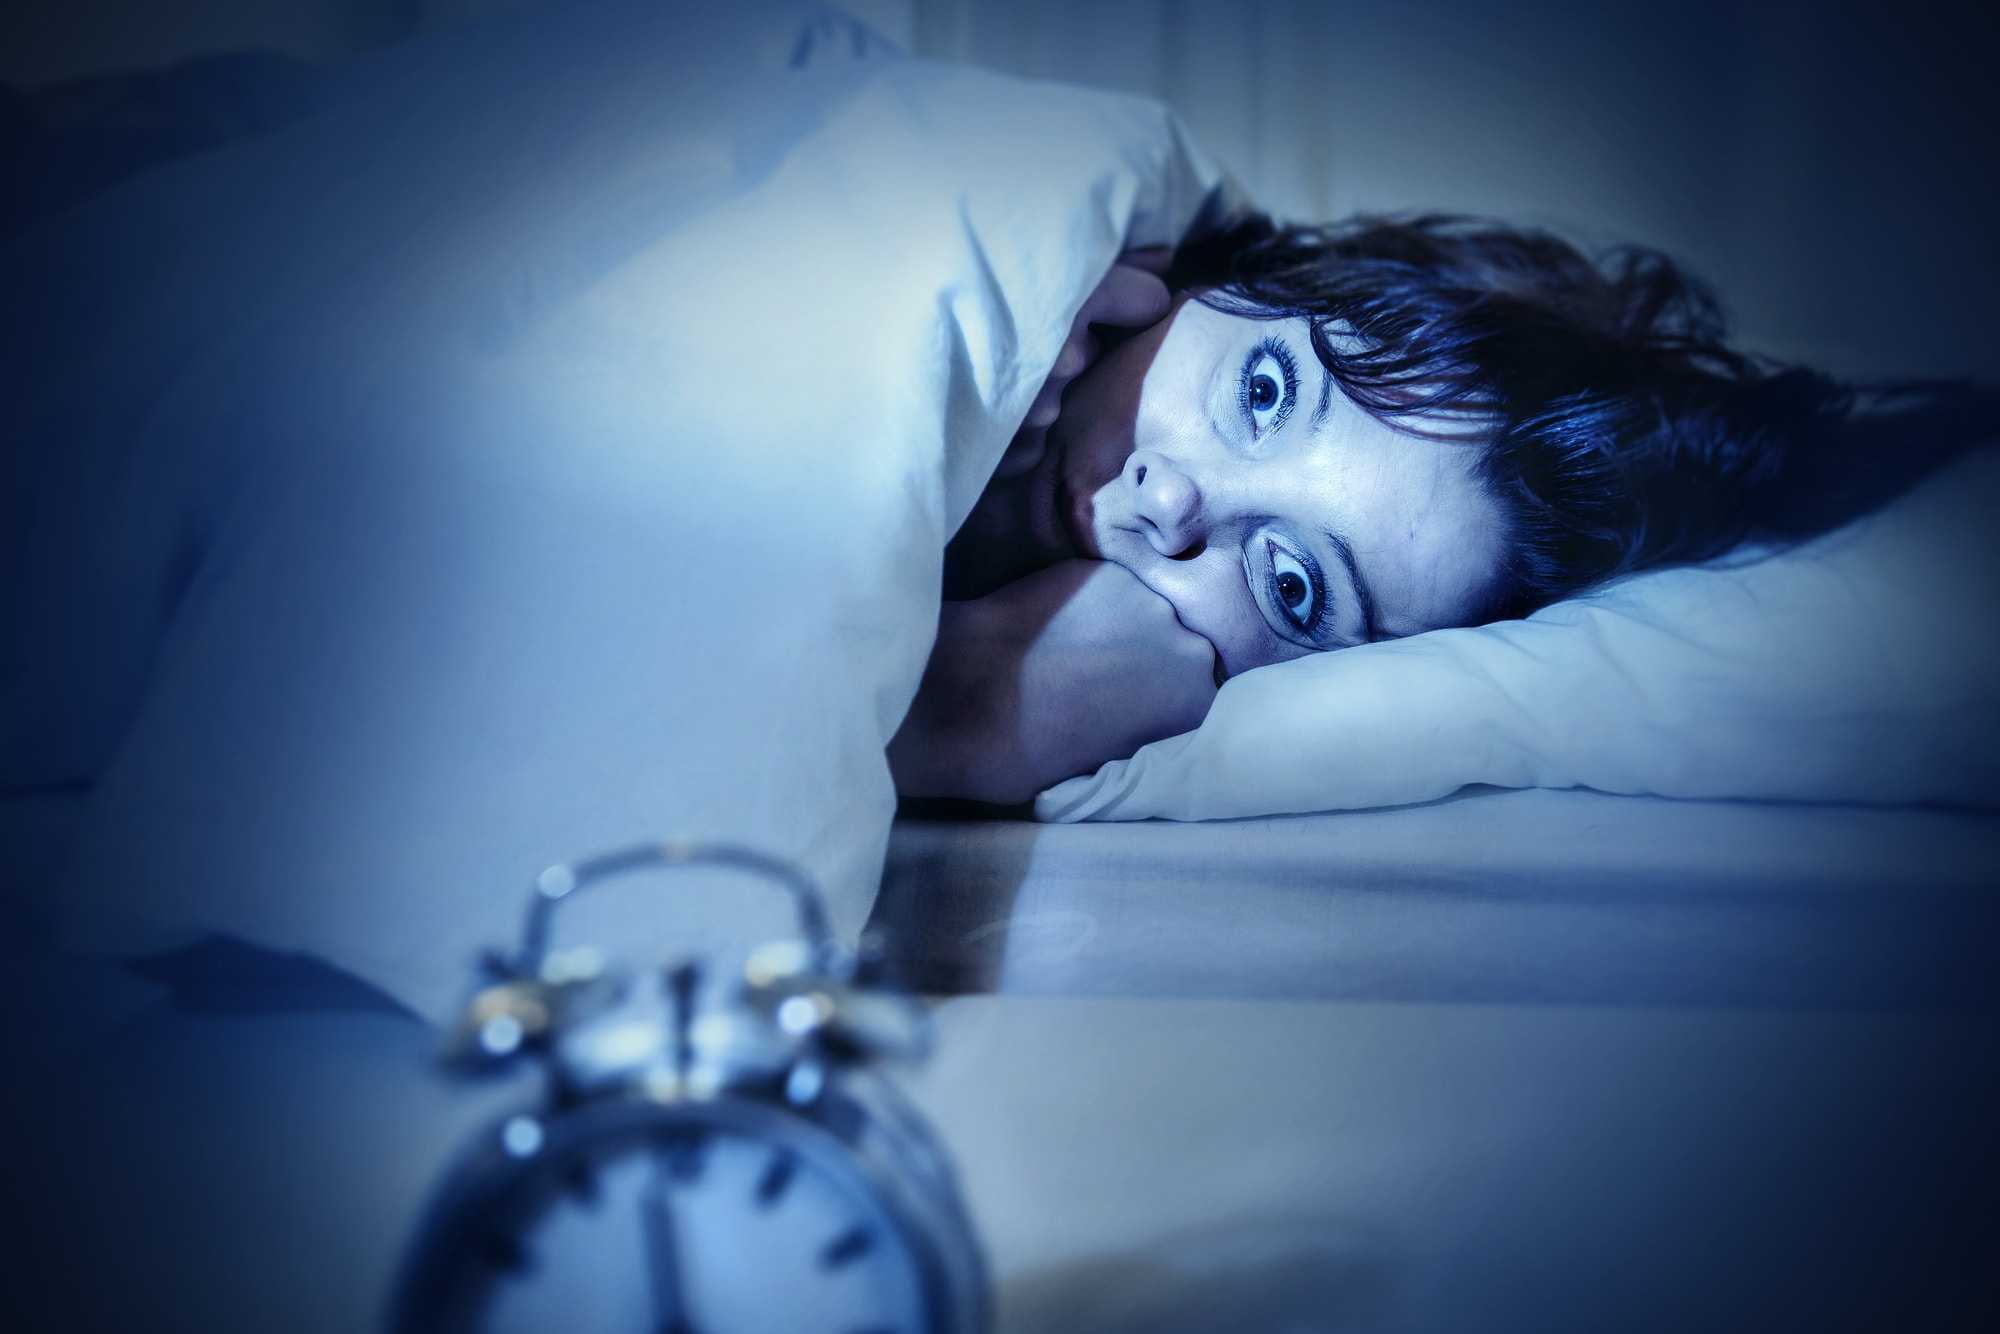 Franchise operations leader up at night